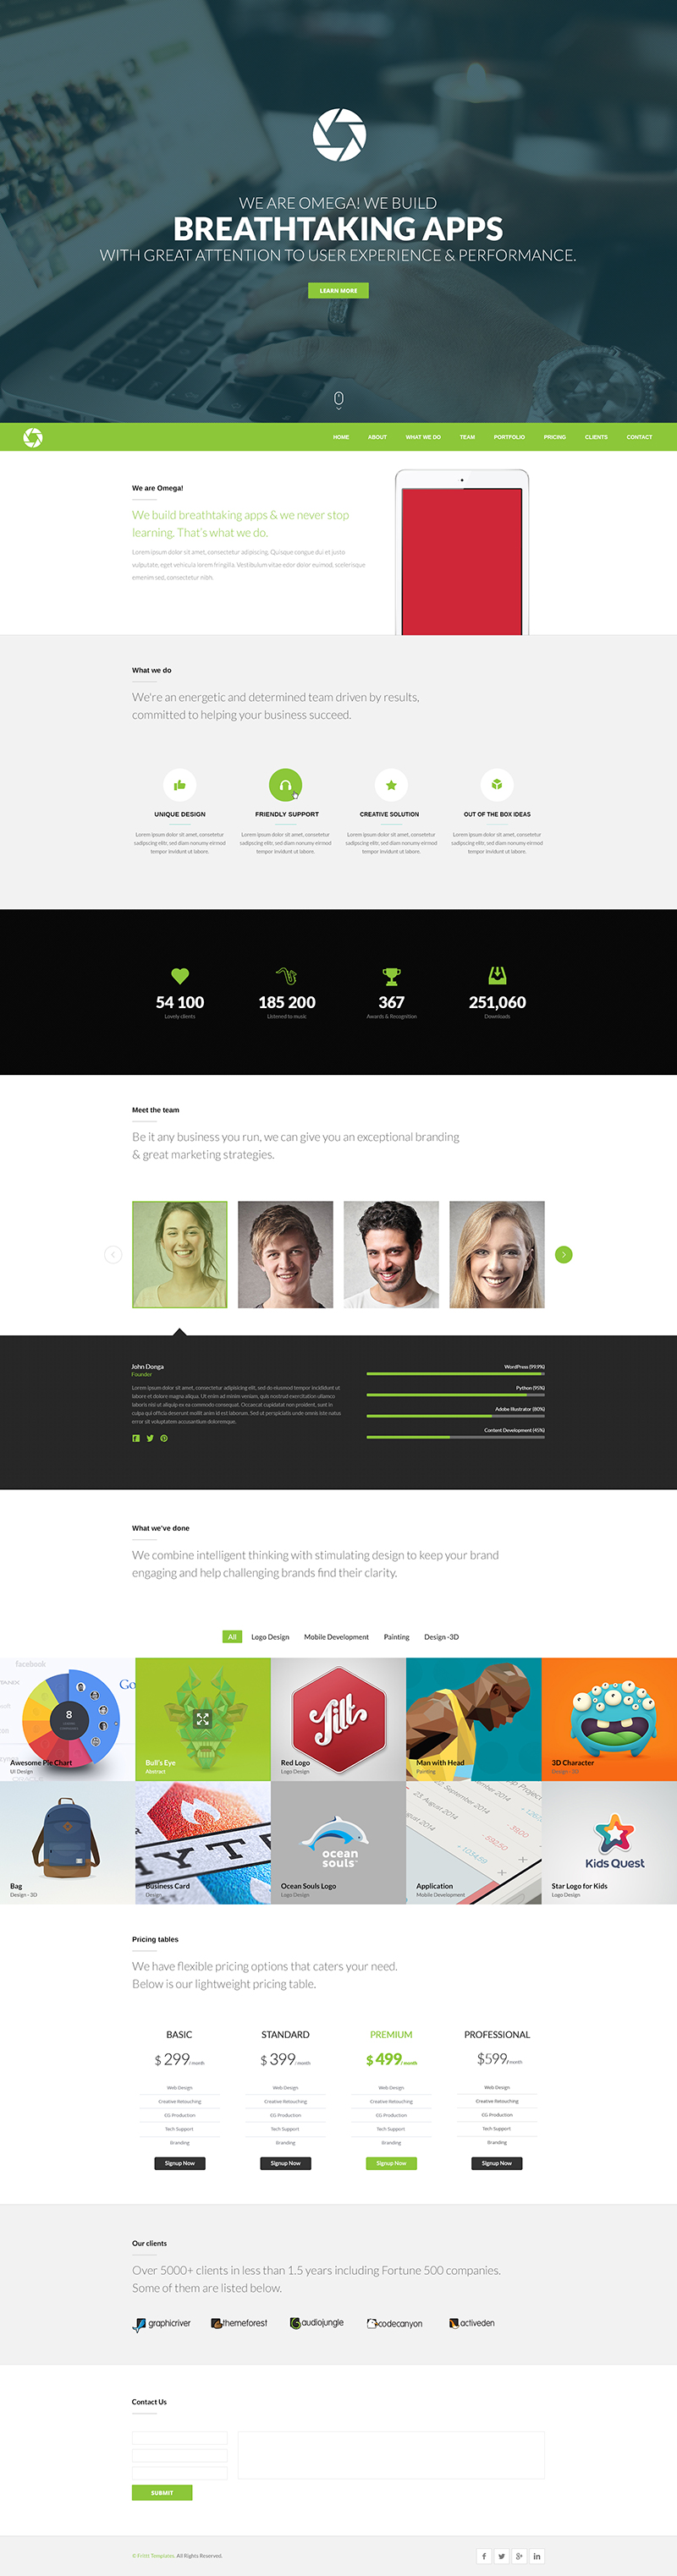 Single Page Website Template Html5 Free Download from i1.wp.com